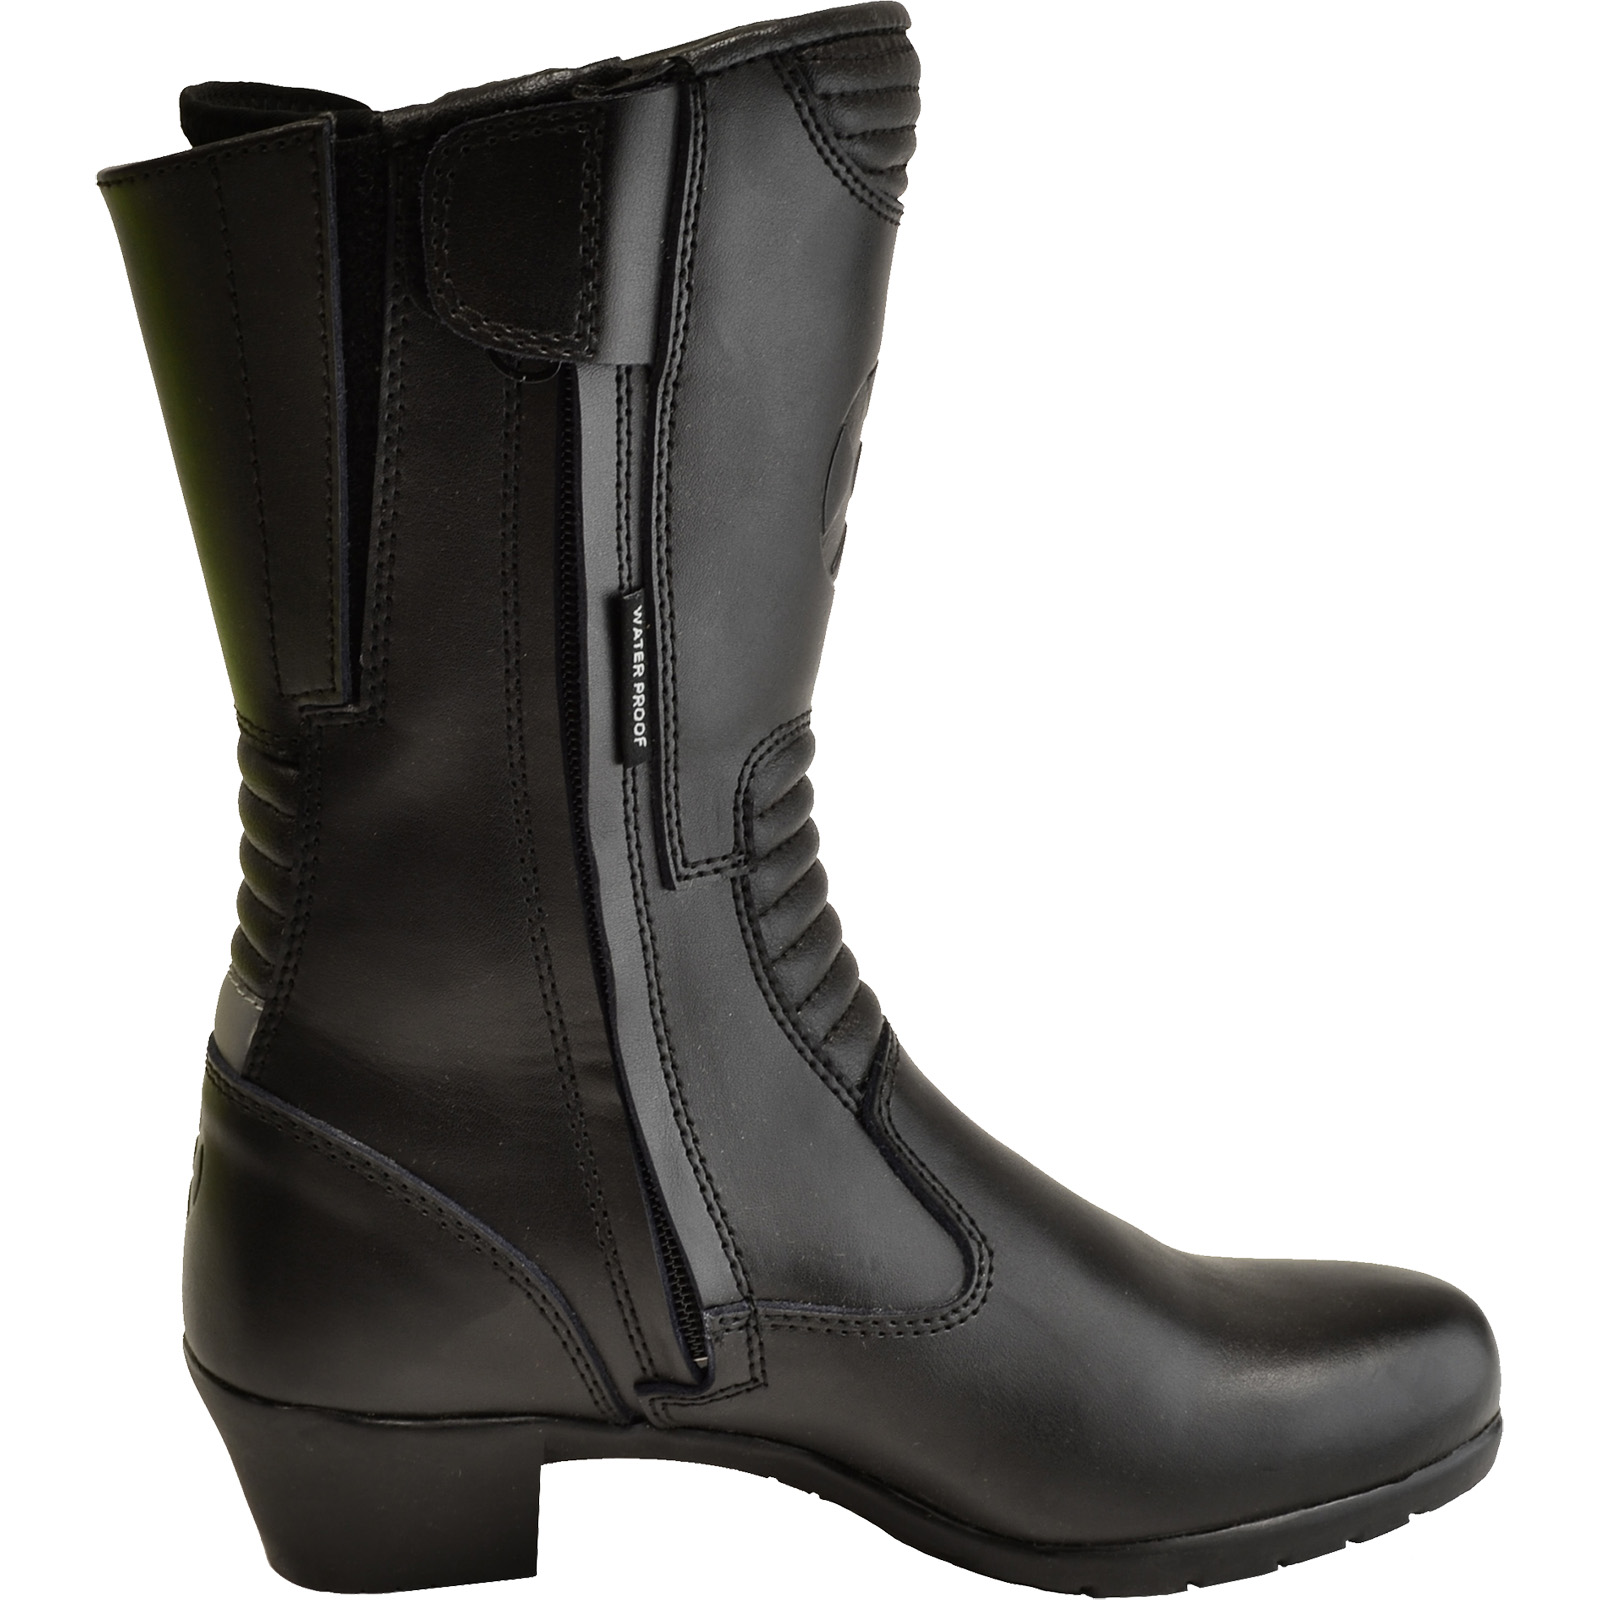 Free shipping BOTH ways on womens motorcycle boots, from our vast selection of styles. Fast delivery, and 24/7/ real-person service with a smile. Click or call